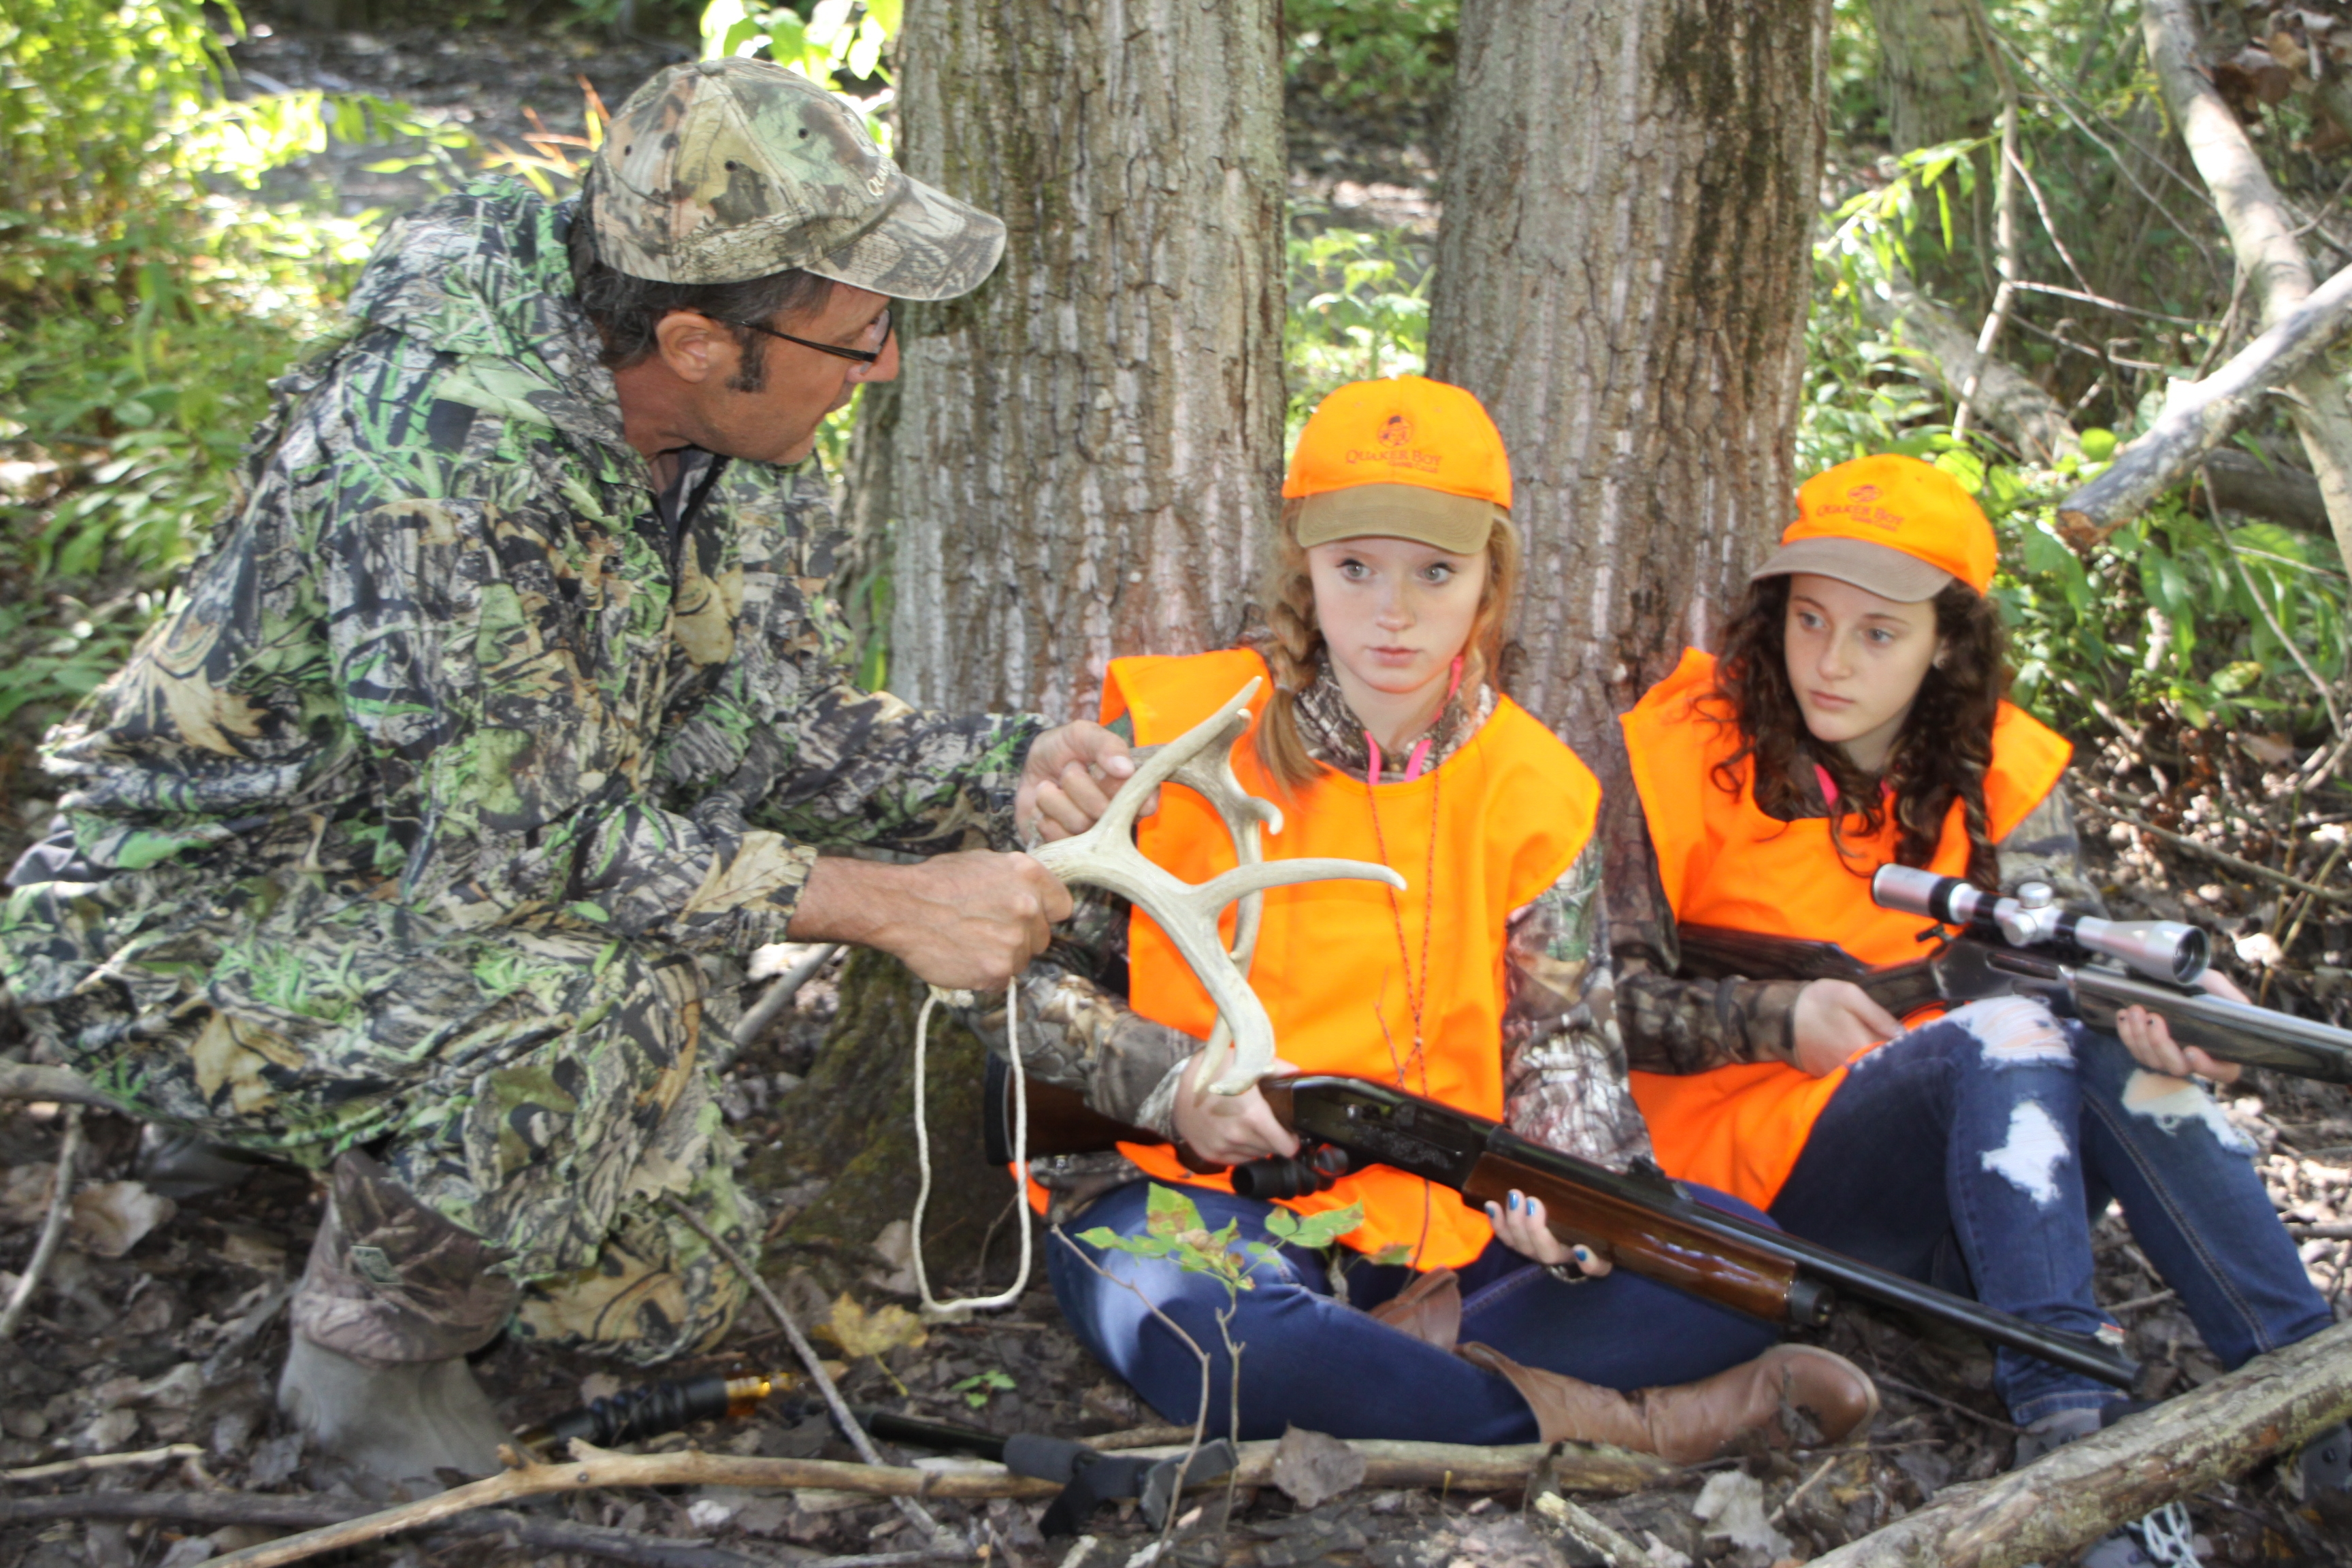 Bill Hilts Jr.: Preparing young and 'old' alike for youth hunt season